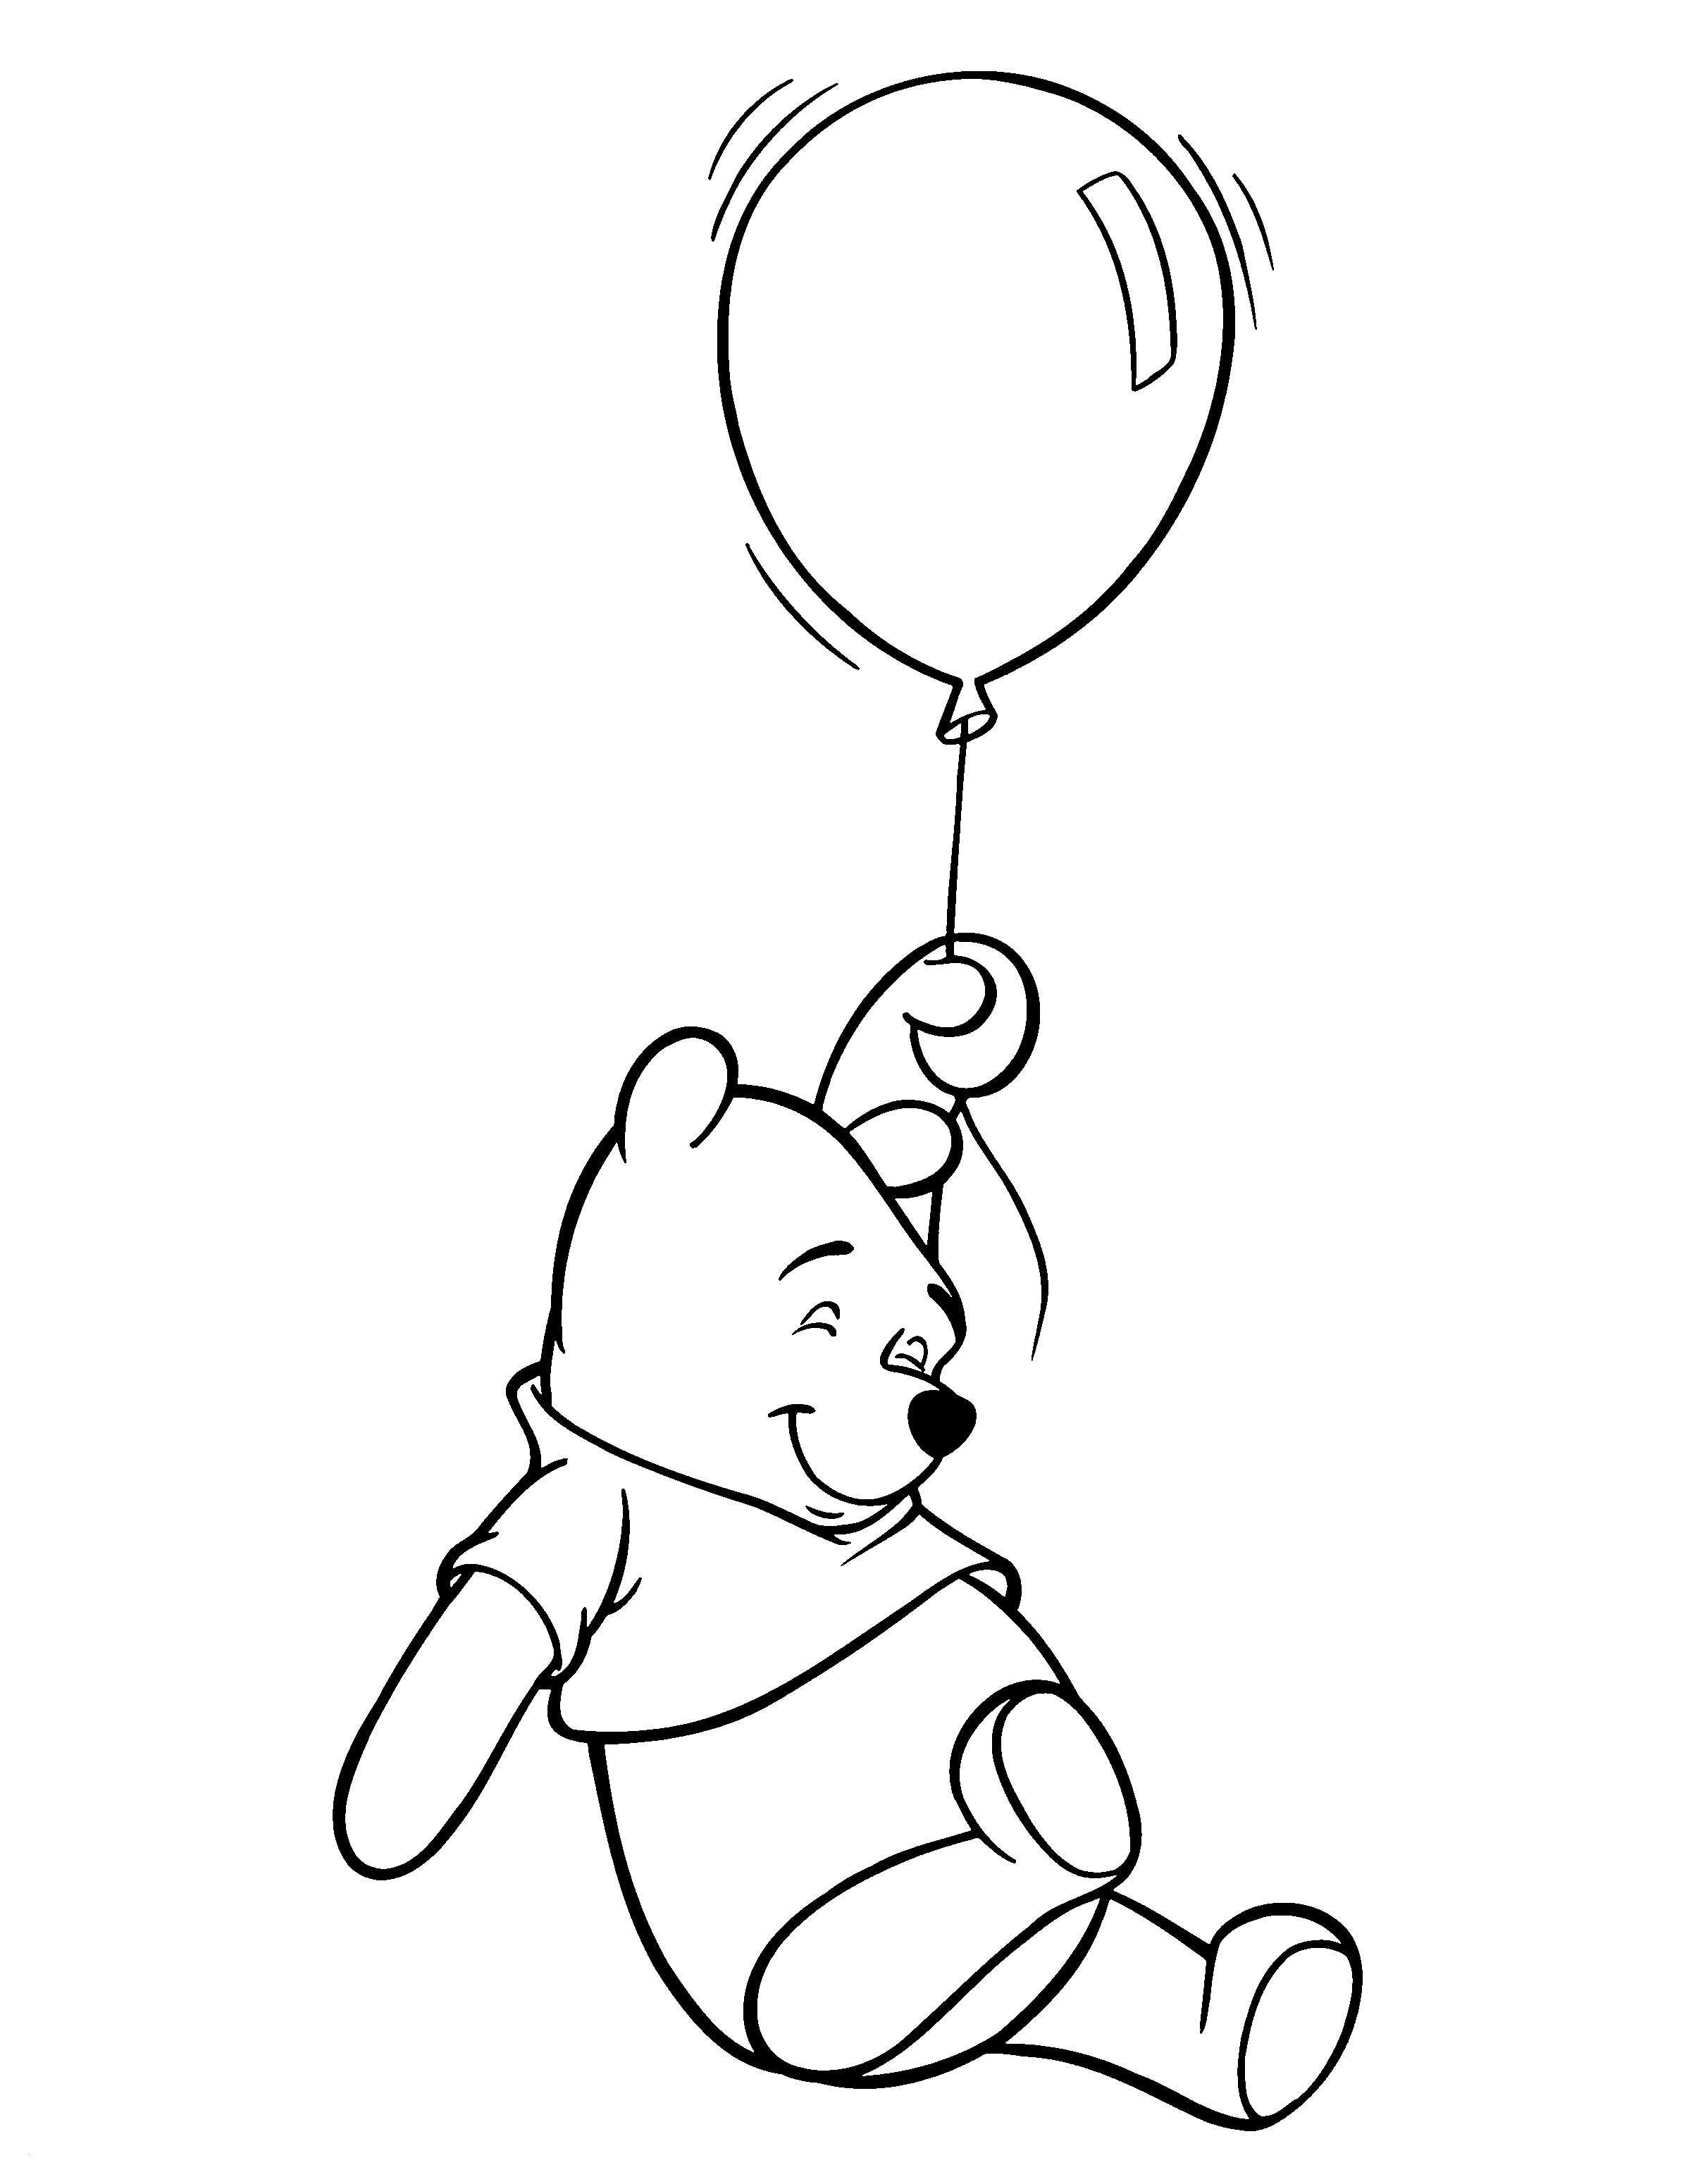 Ausmalbilder Winnie Pooh Inspirierend Tigger From Winnie the Pooh Coloring Pages Awesome Ausmalbilder Bild